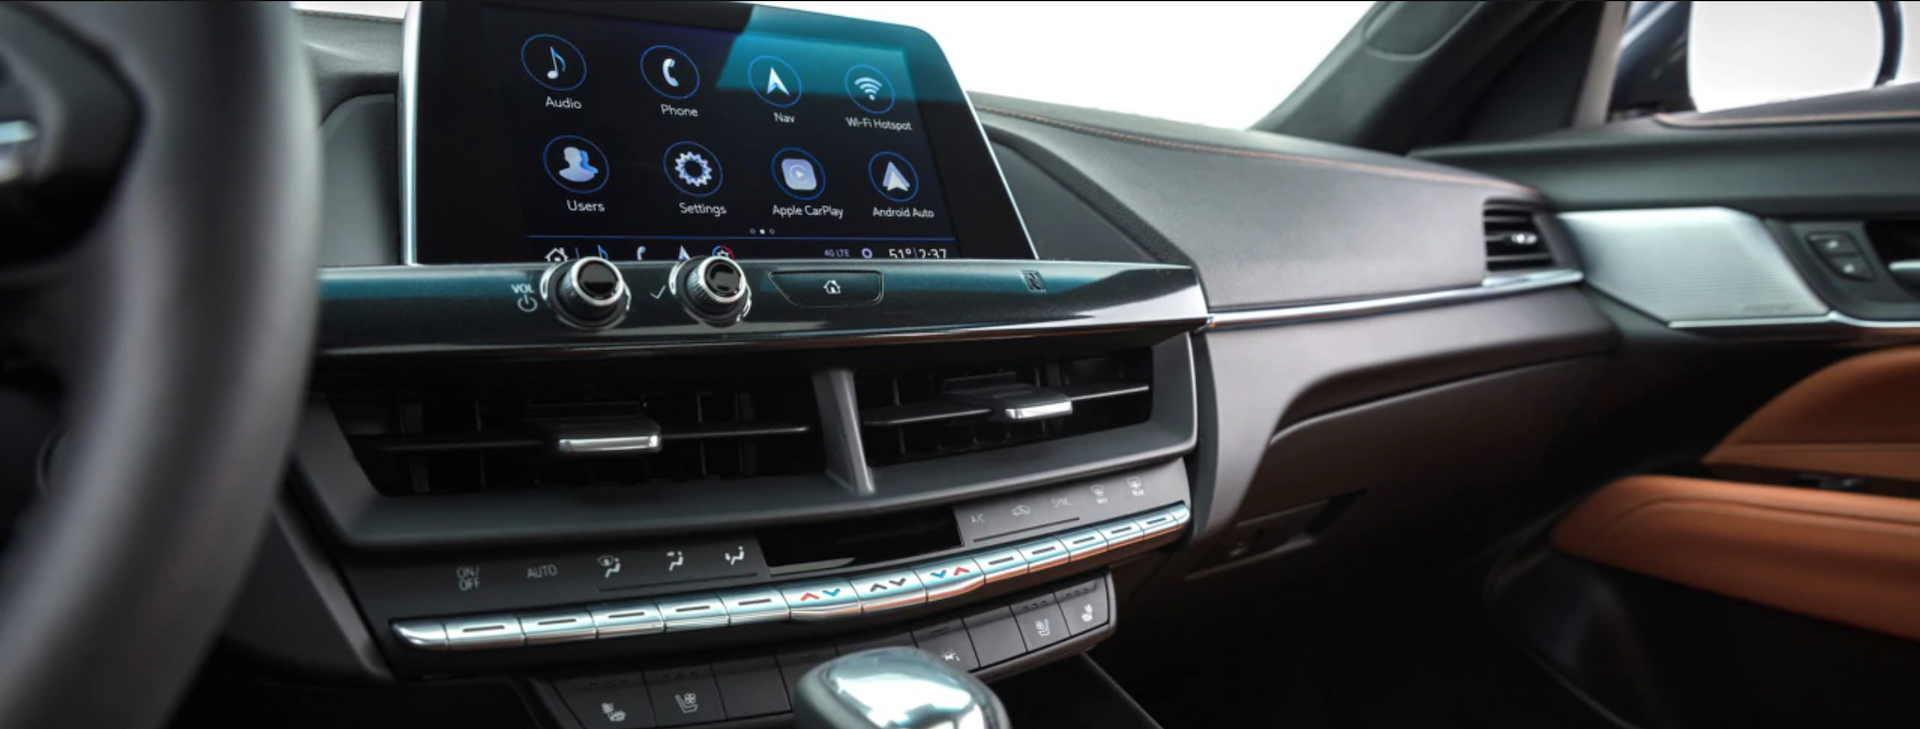 Dashboard pic of the the brand new 2020 Cadillac CT4